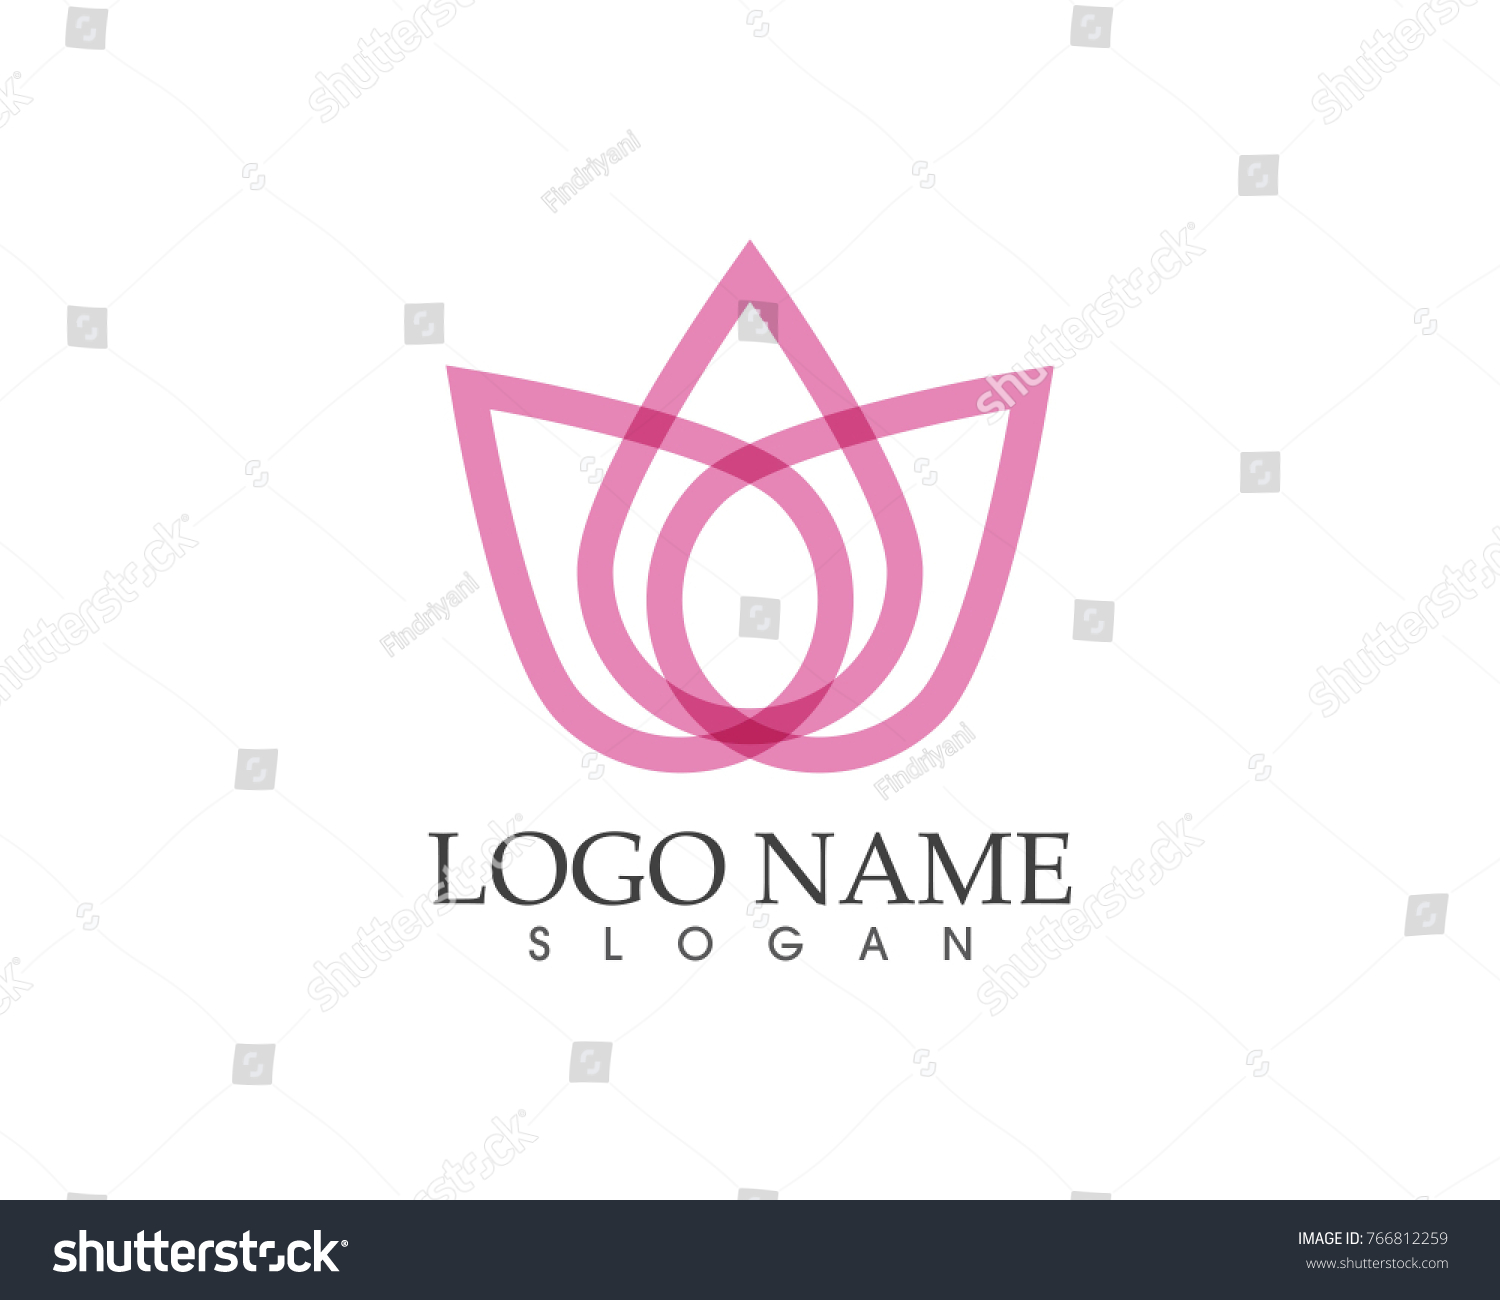 Beauty flower icon logo design template ez canvas id 766812259 izmirmasajfo